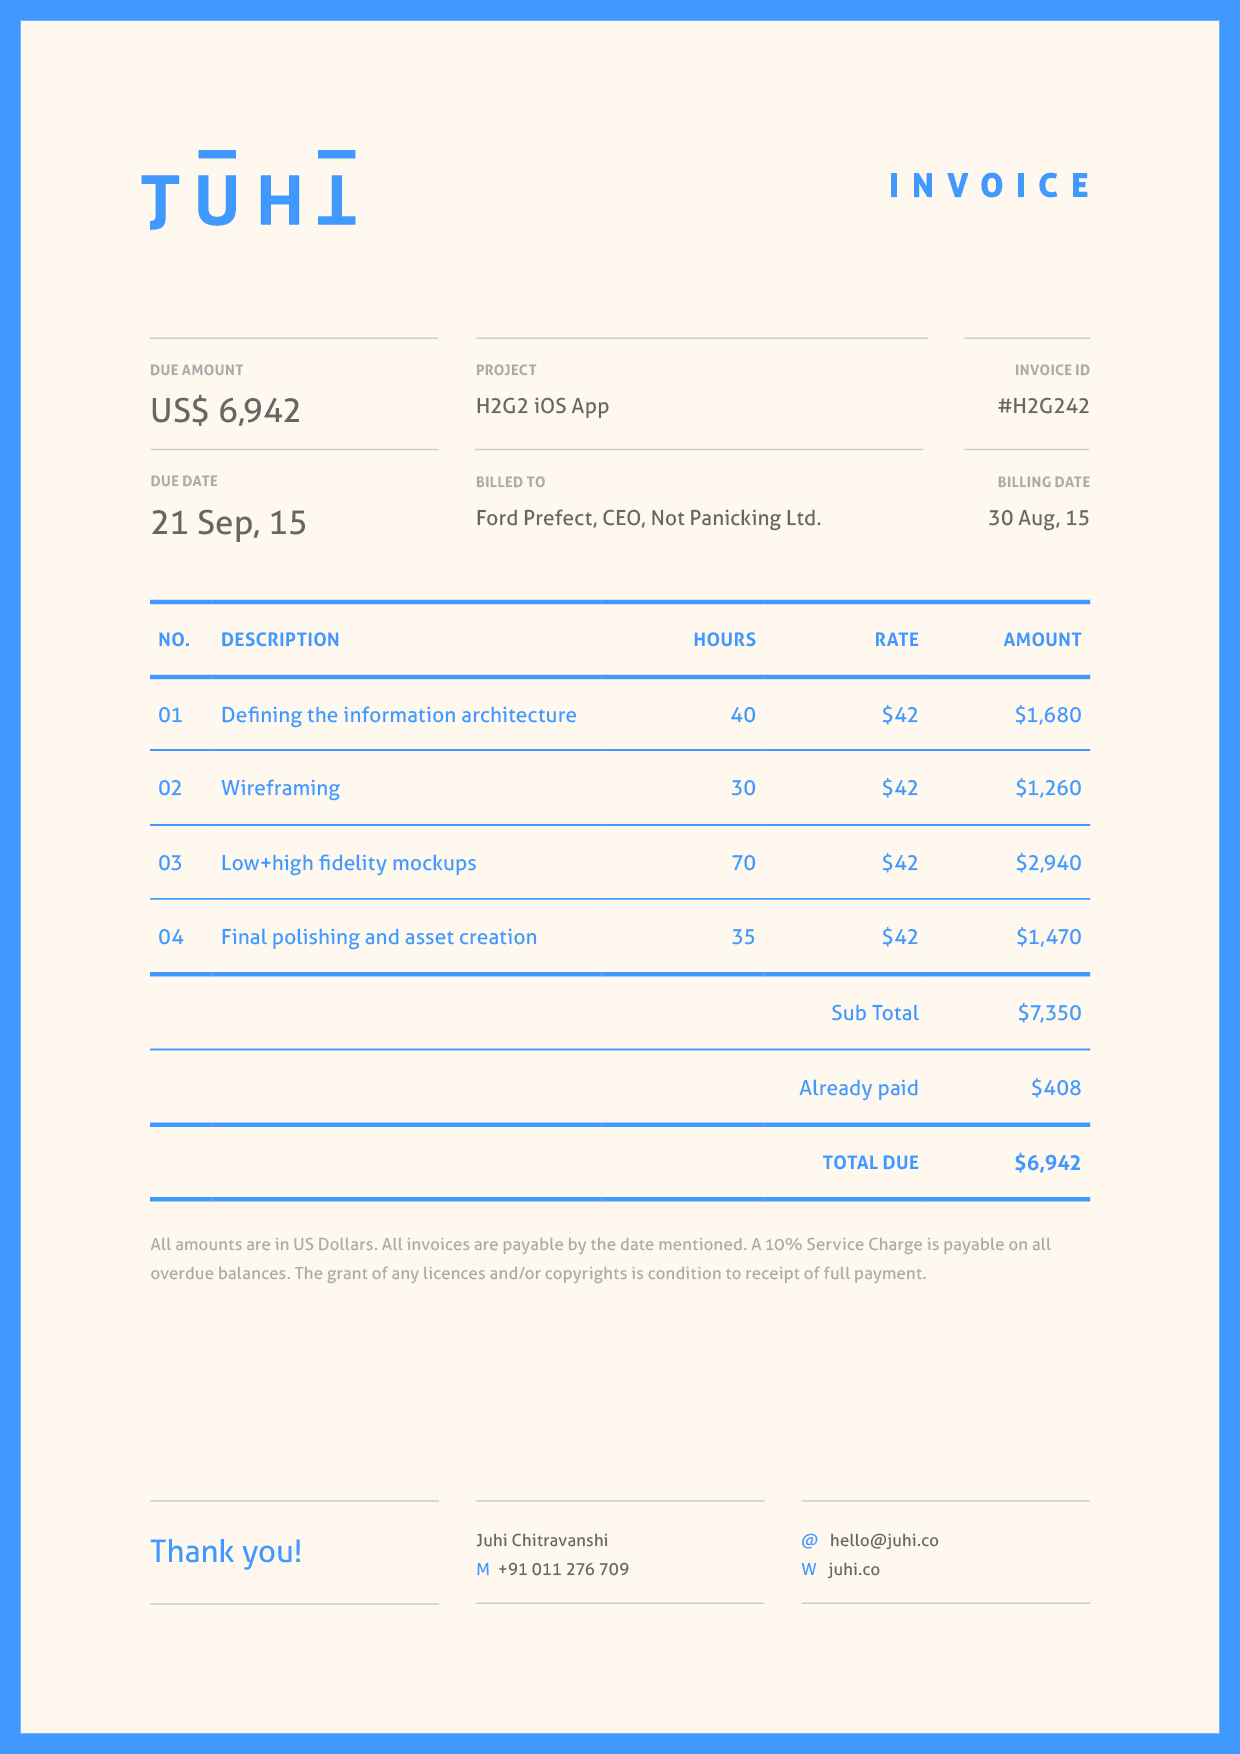 Pigbrotherus  Mesmerizing Dont Hold Back On Your Invoice  Inspiring Designs  With Magnificent Invoice By Juhi Chitravanshi Follow With Lovely Sample For Invoice Also Westpac Invoice Finance Login In Addition What Is A Cash Invoice And Free Custom Invoice Template As Well As Proforma Invoices Definition Additionally Stock Control And Invoicing Software From Inspirationfeedcom With Pigbrotherus  Magnificent Dont Hold Back On Your Invoice  Inspiring Designs  With Lovely Invoice By Juhi Chitravanshi Follow And Mesmerizing Sample For Invoice Also Westpac Invoice Finance Login In Addition What Is A Cash Invoice From Inspirationfeedcom